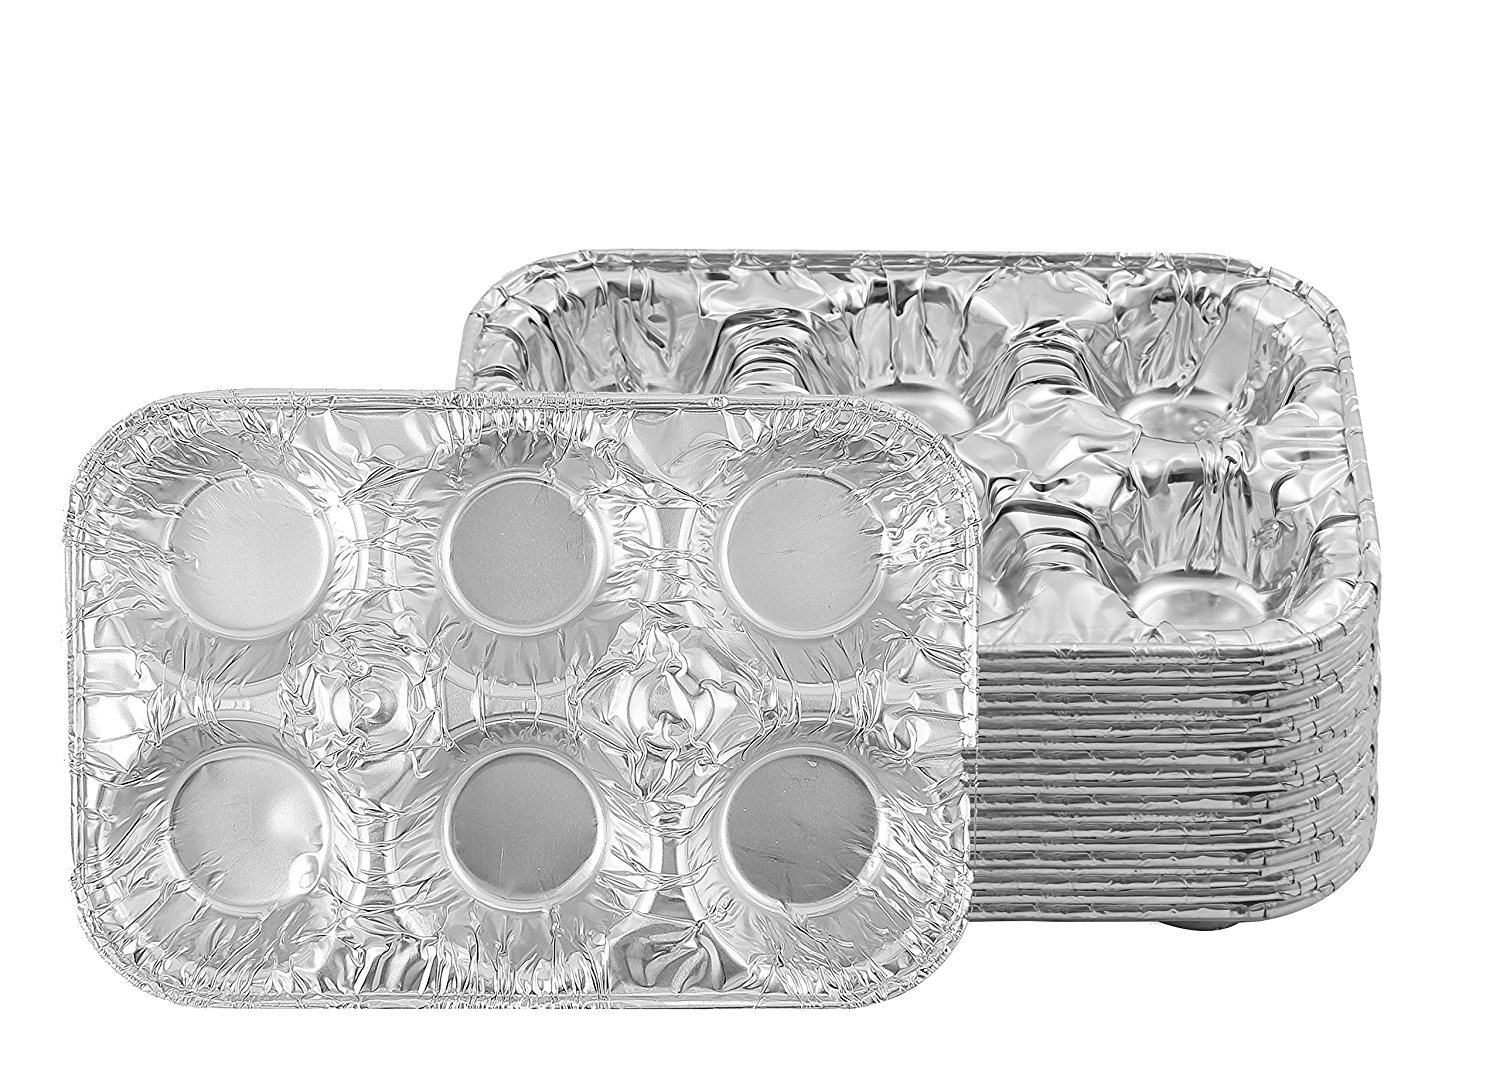 Party Bargains Muffin Pan | 6-Cup Cupcake Aluminum Pans Favorite Muffin Tin Size for Baking Cupcakes - Standard Size | Pack of 20